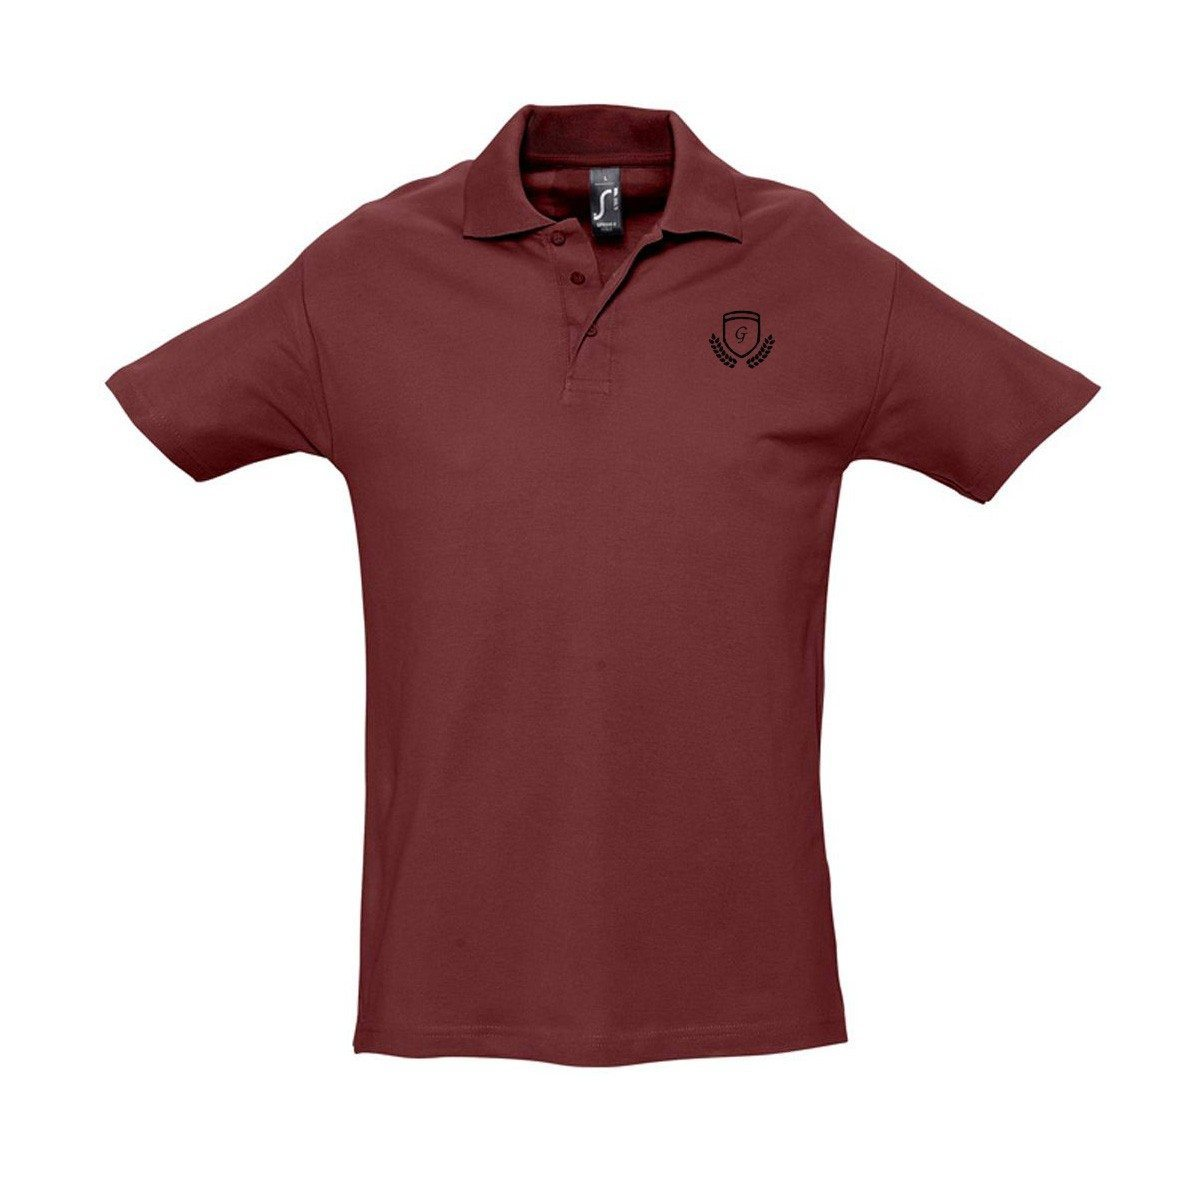 Polo Homme - Broderie personnalisée